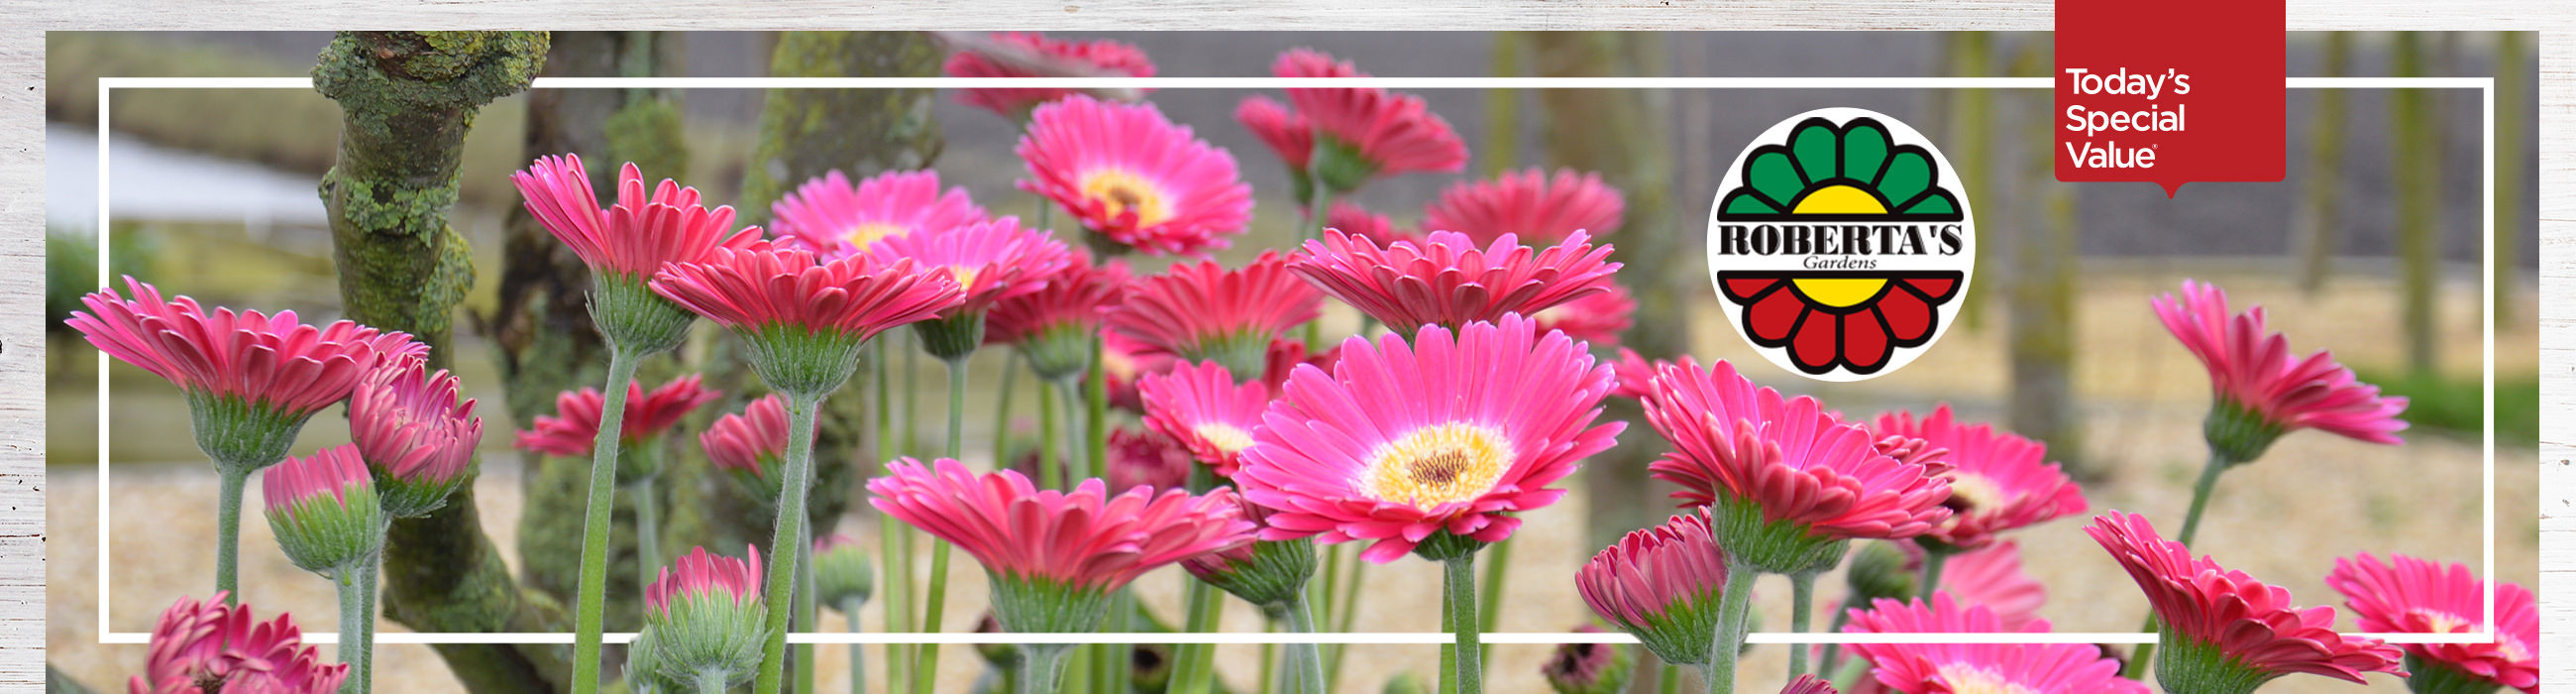 Today's Special Value® — Roberta's 6-Piece Super Sweet Hardy Gerber Daisies